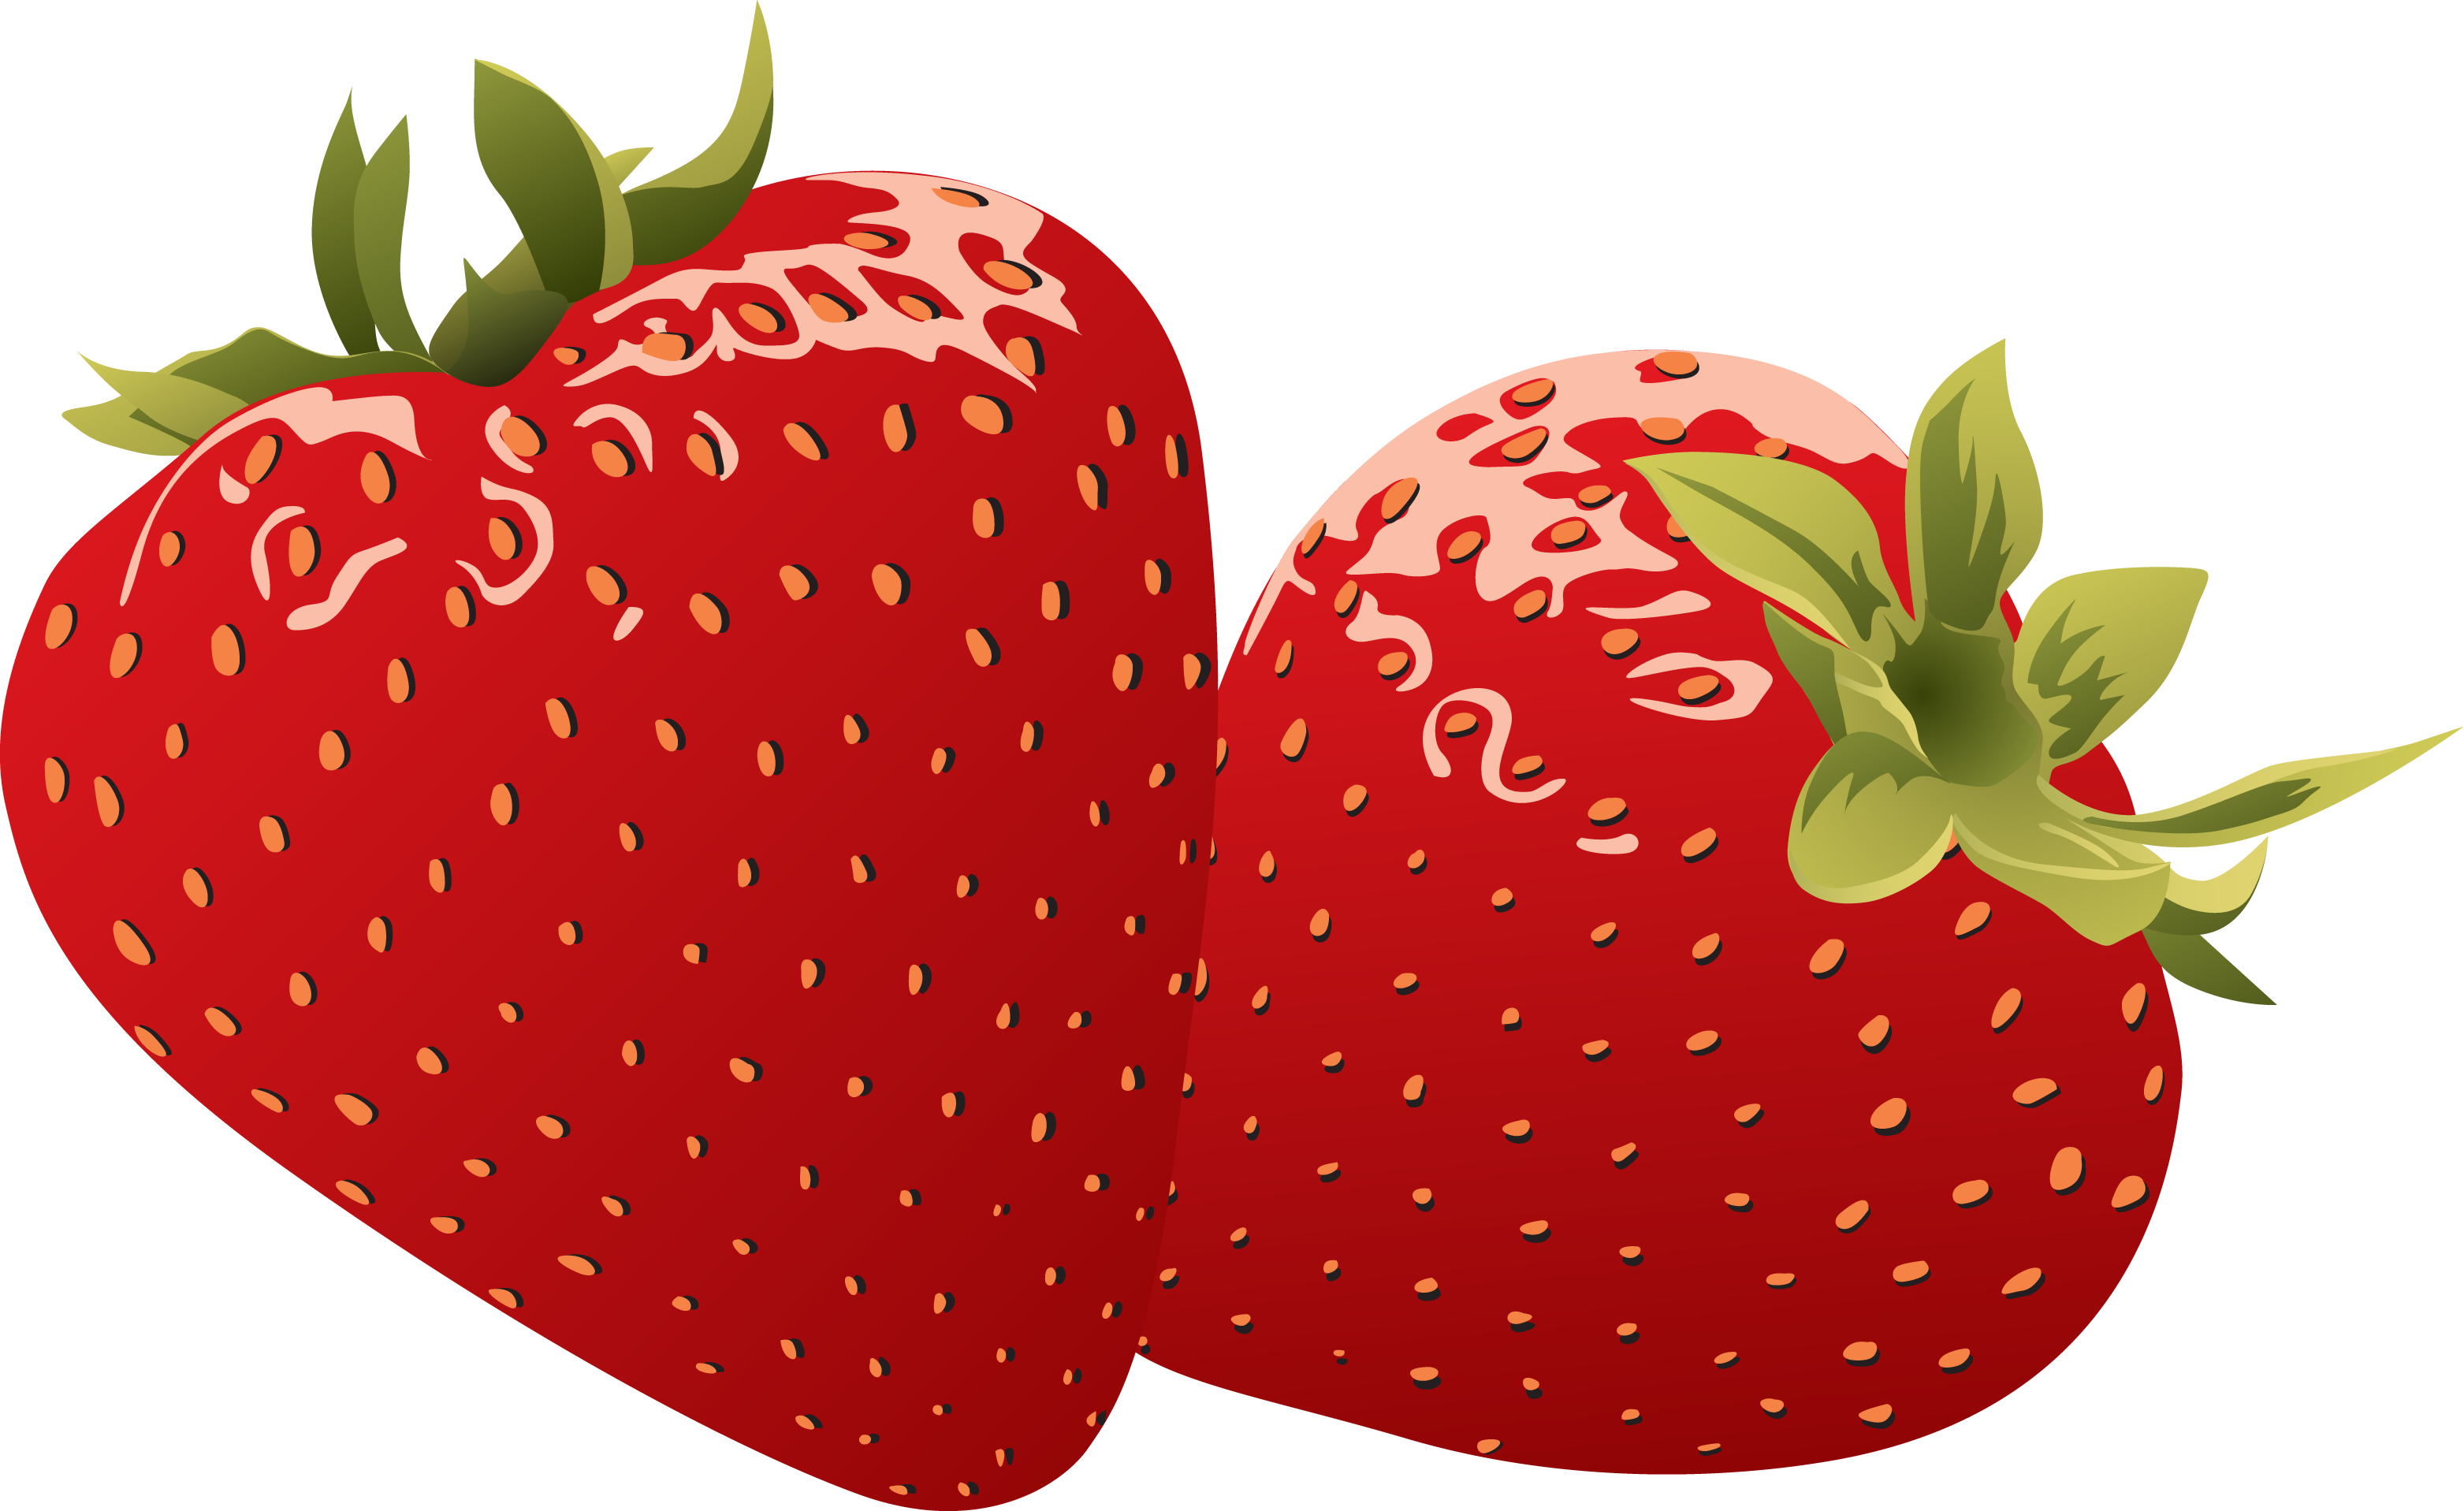 Clipart strawberrys svg royalty free library Free Strawberry Cliparts, Download Free Clip Art, Free Clip Art on ... svg royalty free library